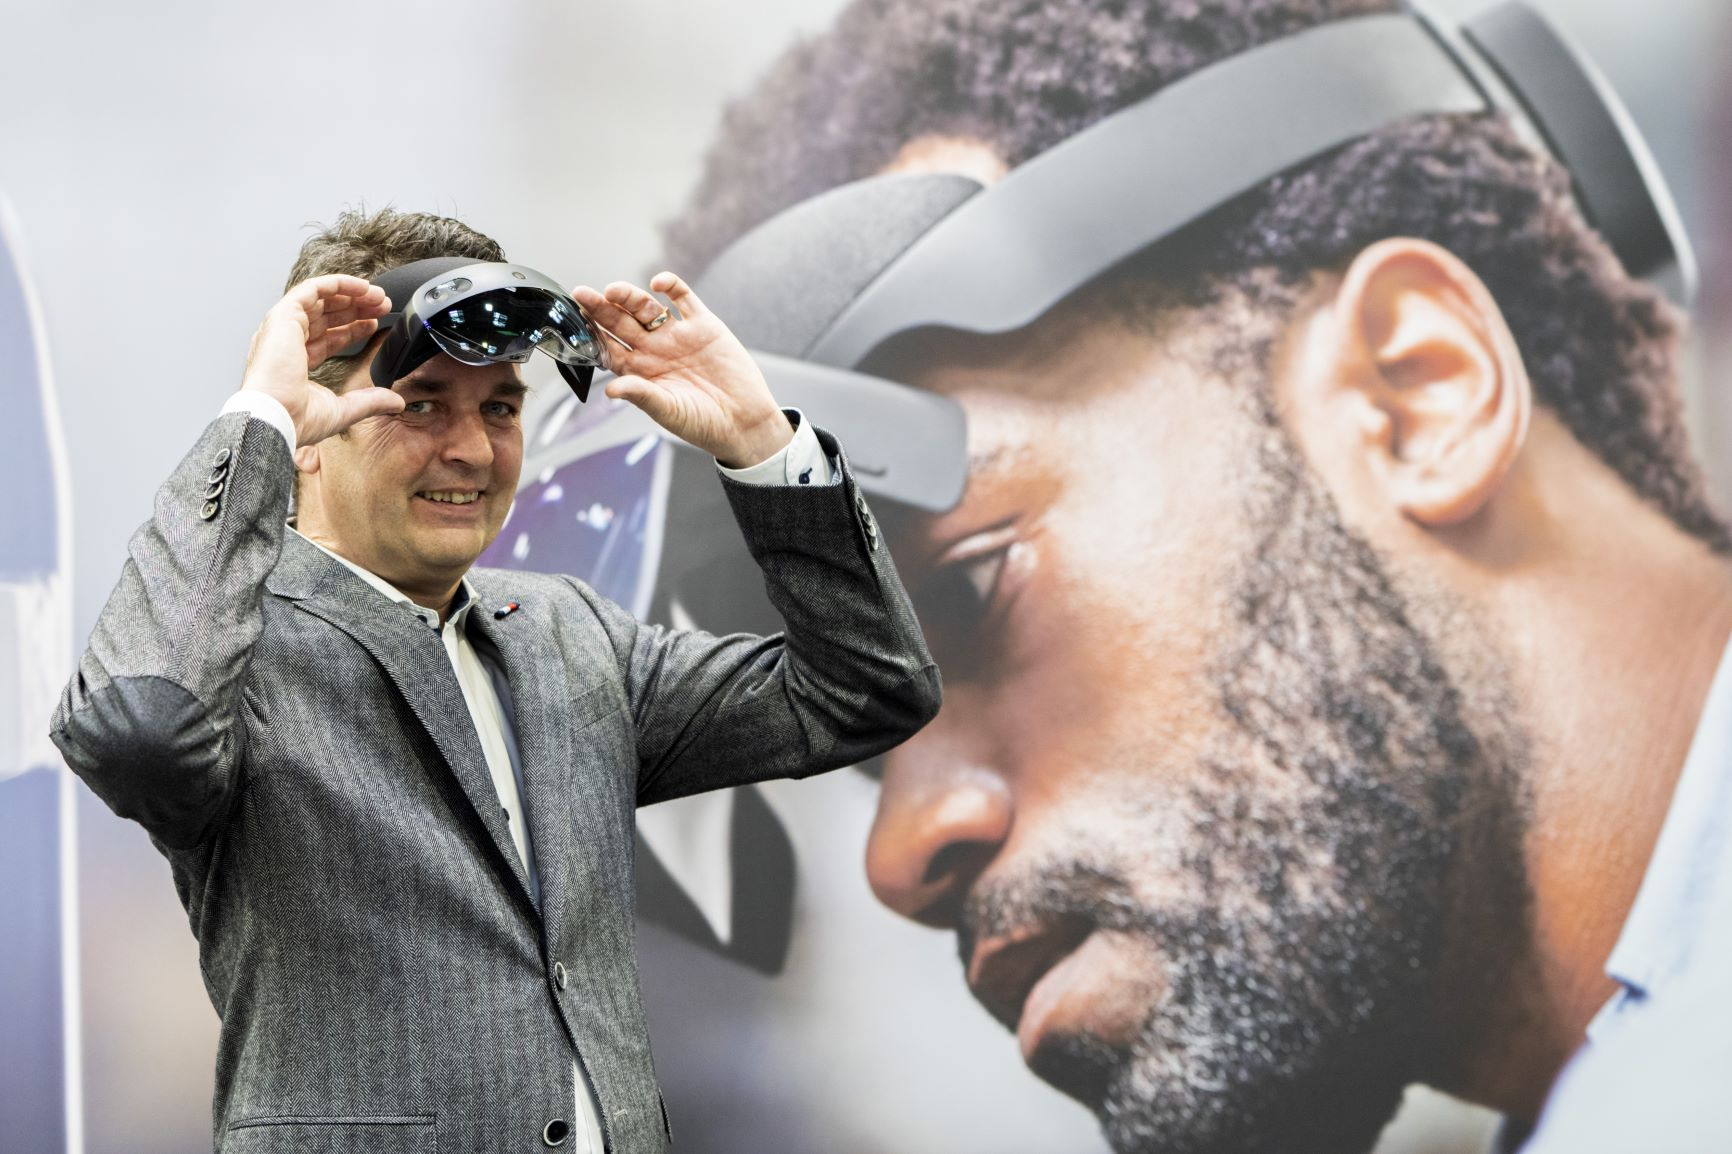 Microsoft HoloLens demo at Hannover Messe 2019